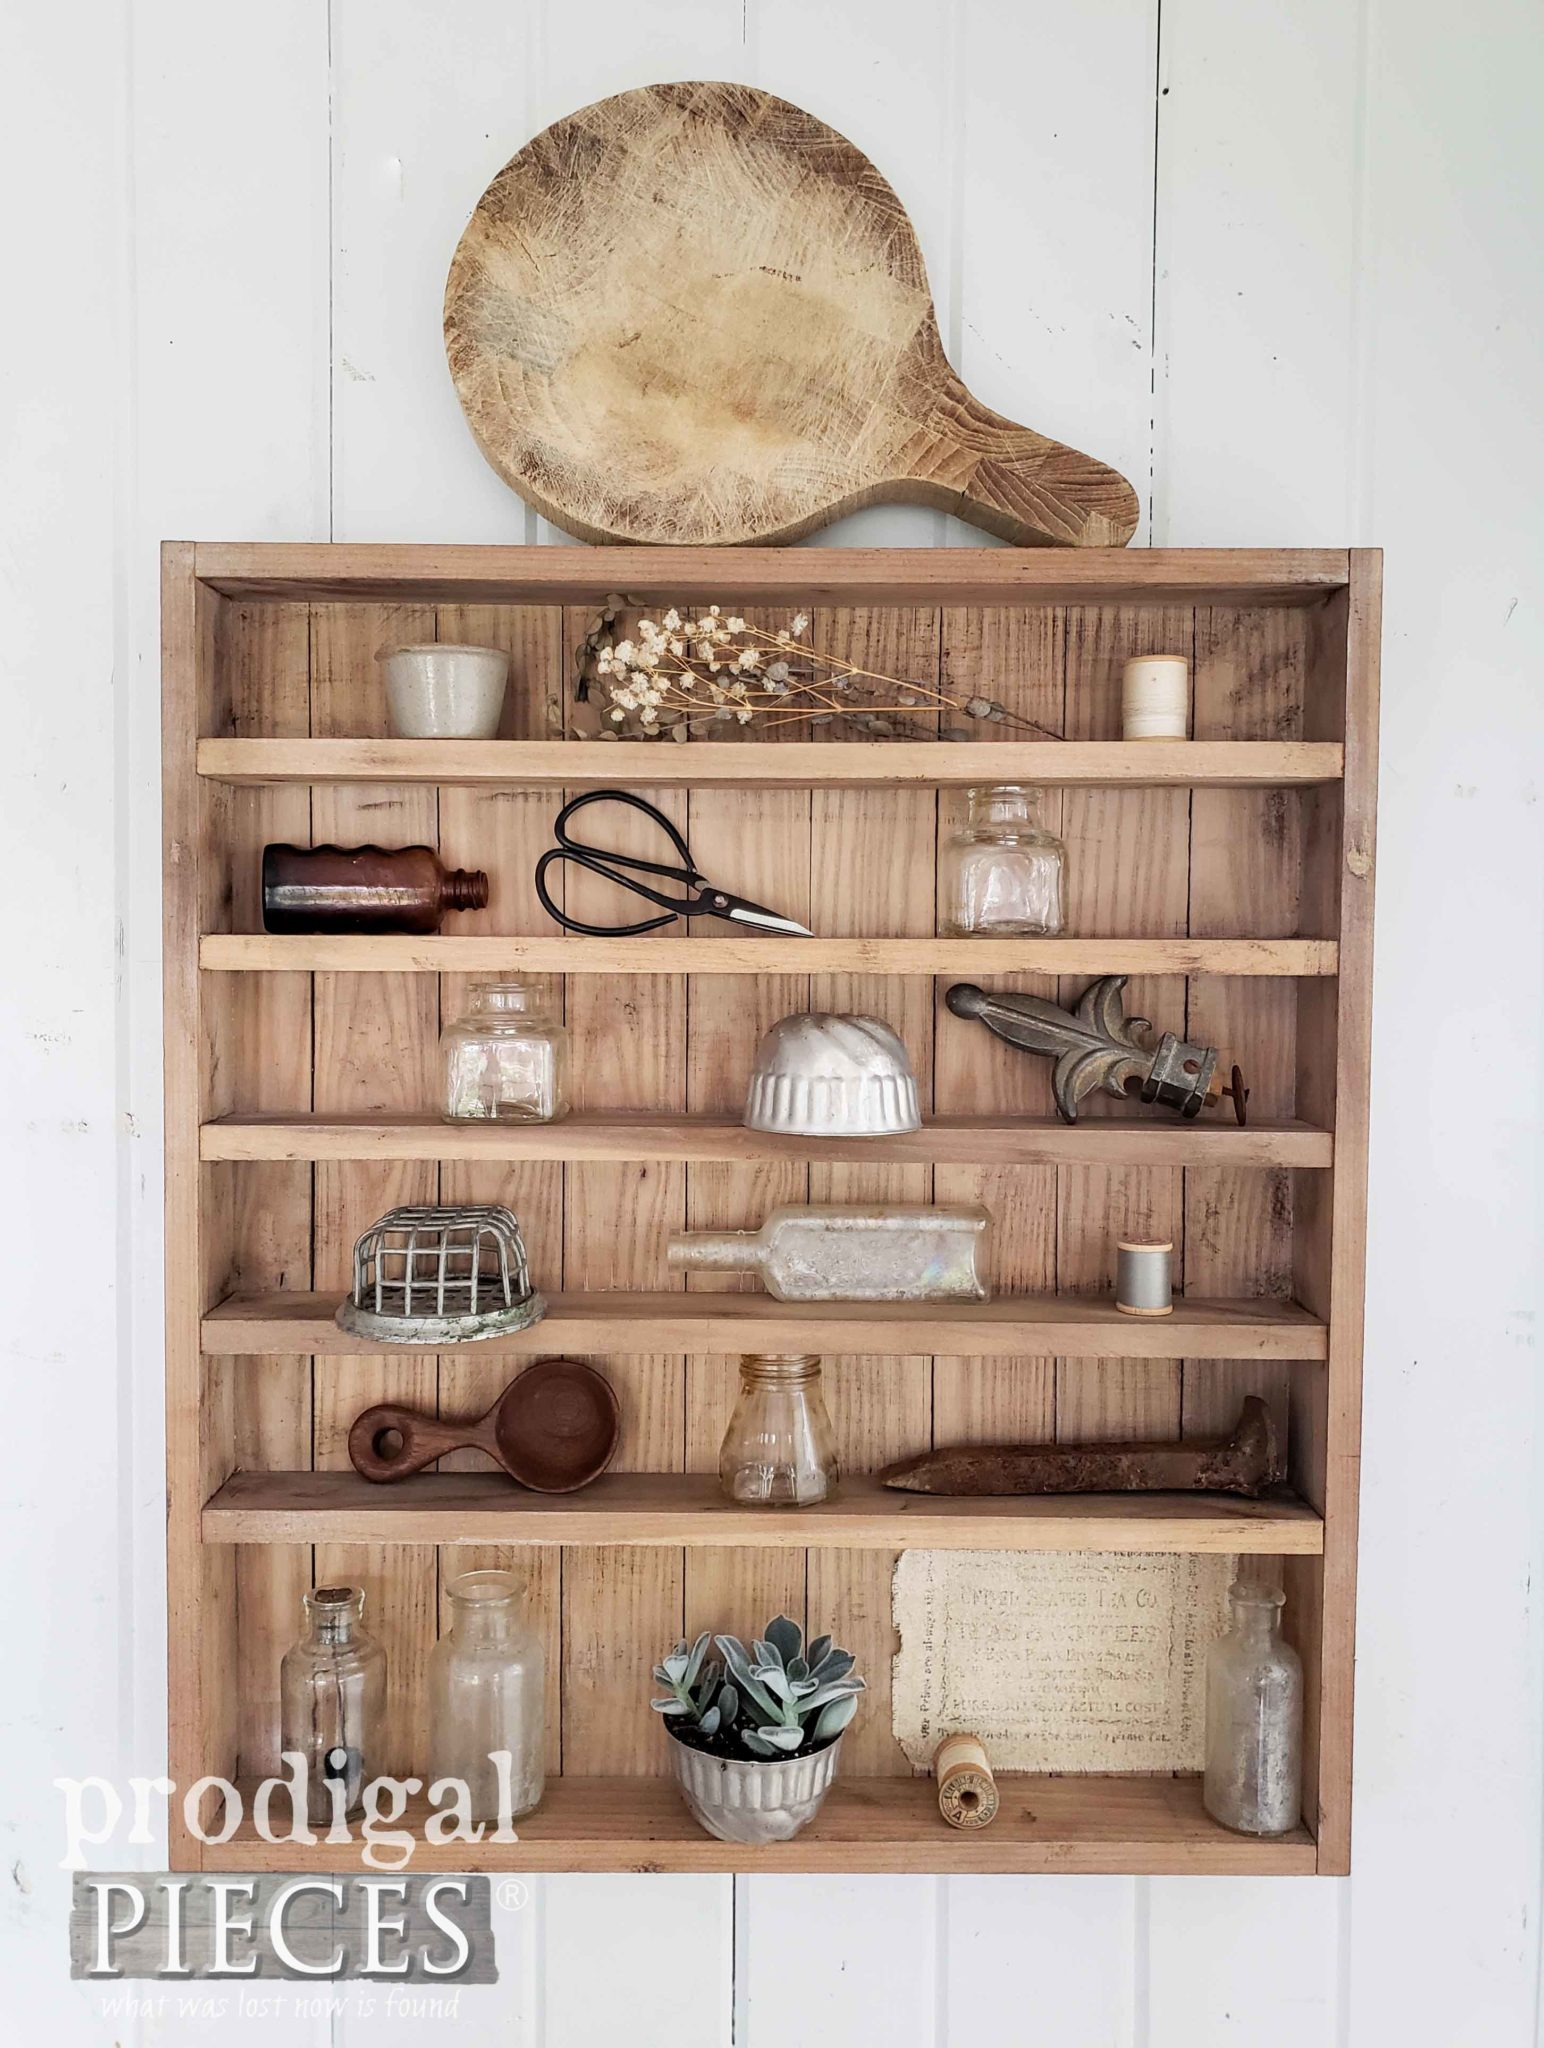 Handmade Farmhouse Apothecary Cabinet with Shelves for Vintage Styling by Prodigal Pieces | prodigalpieces.com #prodigalpieces #diy #farmhouse #home #homedecor #vintage